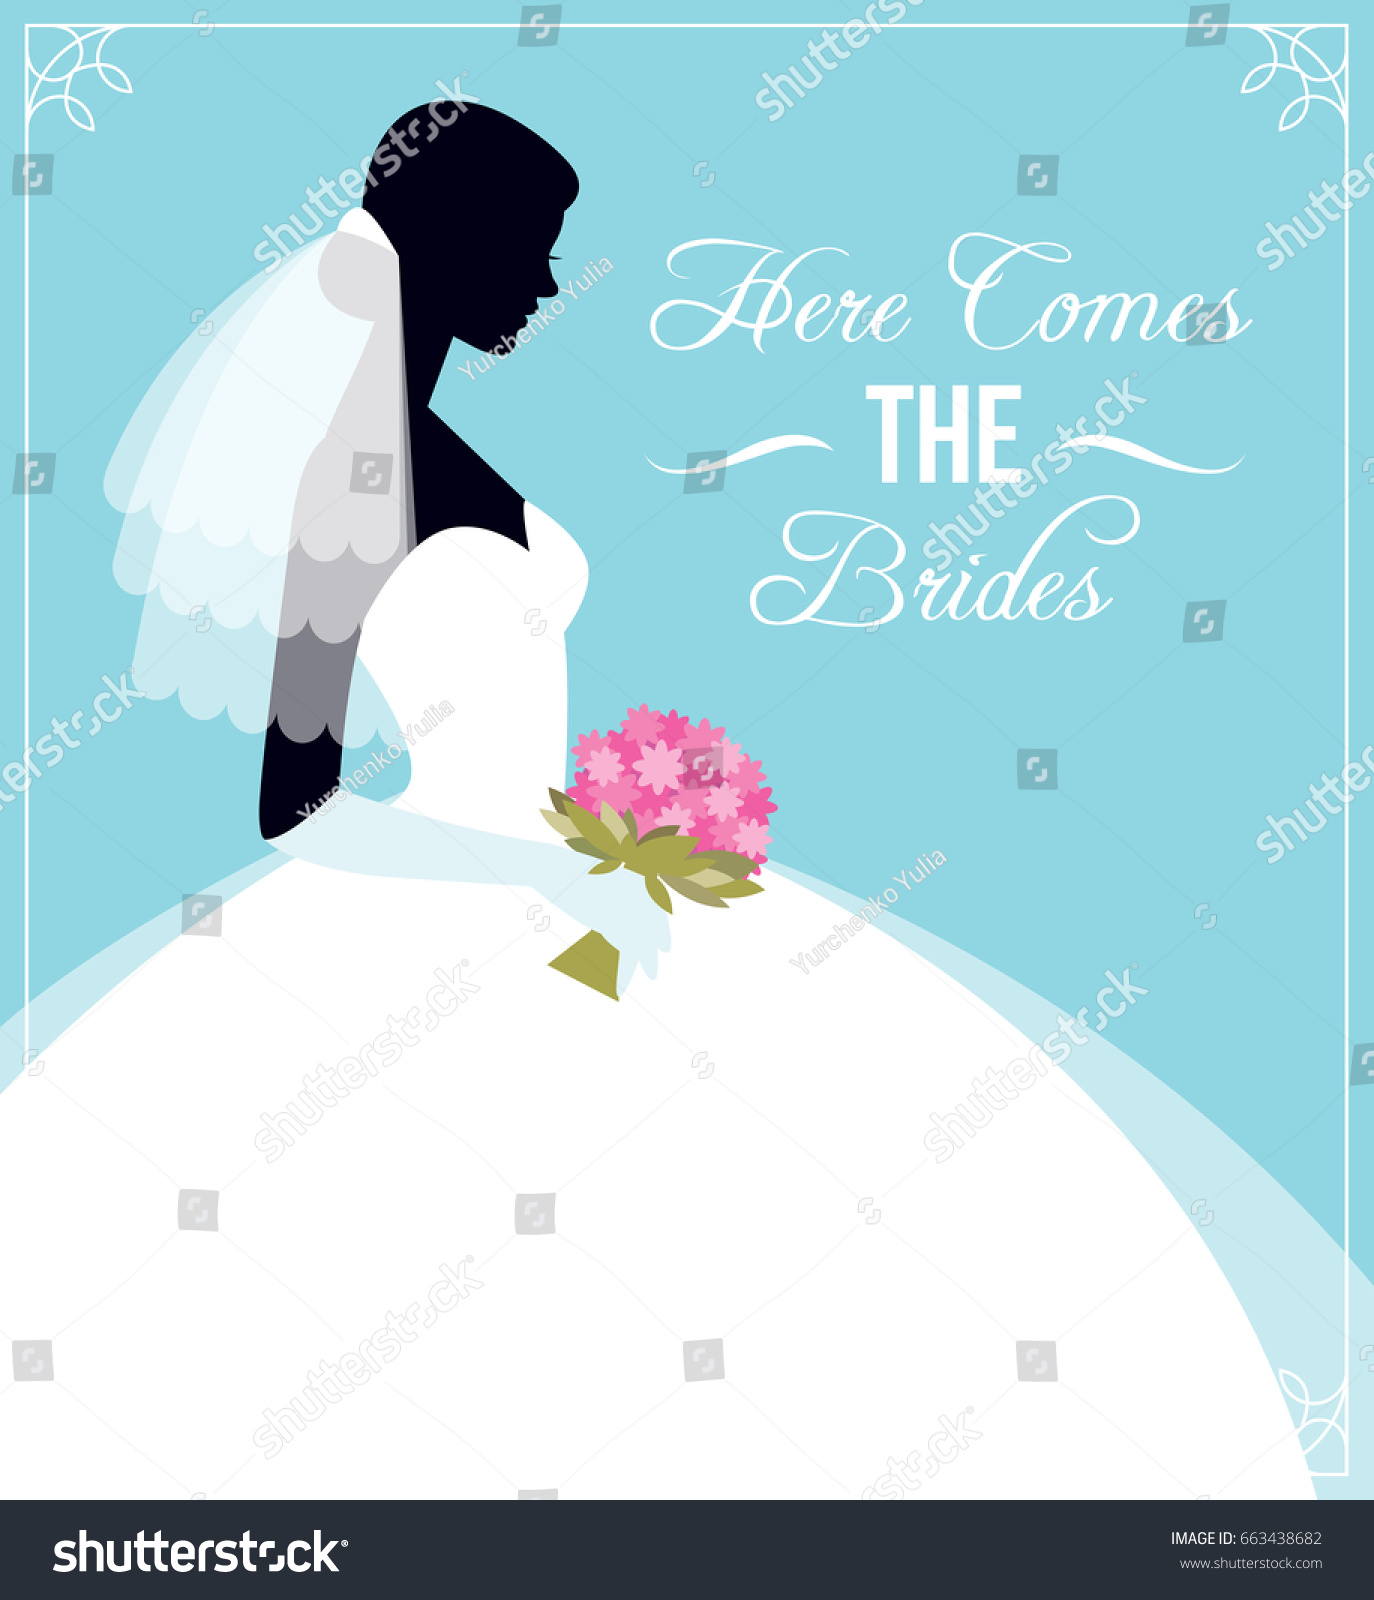 Here Comes Bride Template Flyer Wedding Stock Vector Royalty Free 663438682,Wedding Sunflower Yellow Flower Girl Dresses